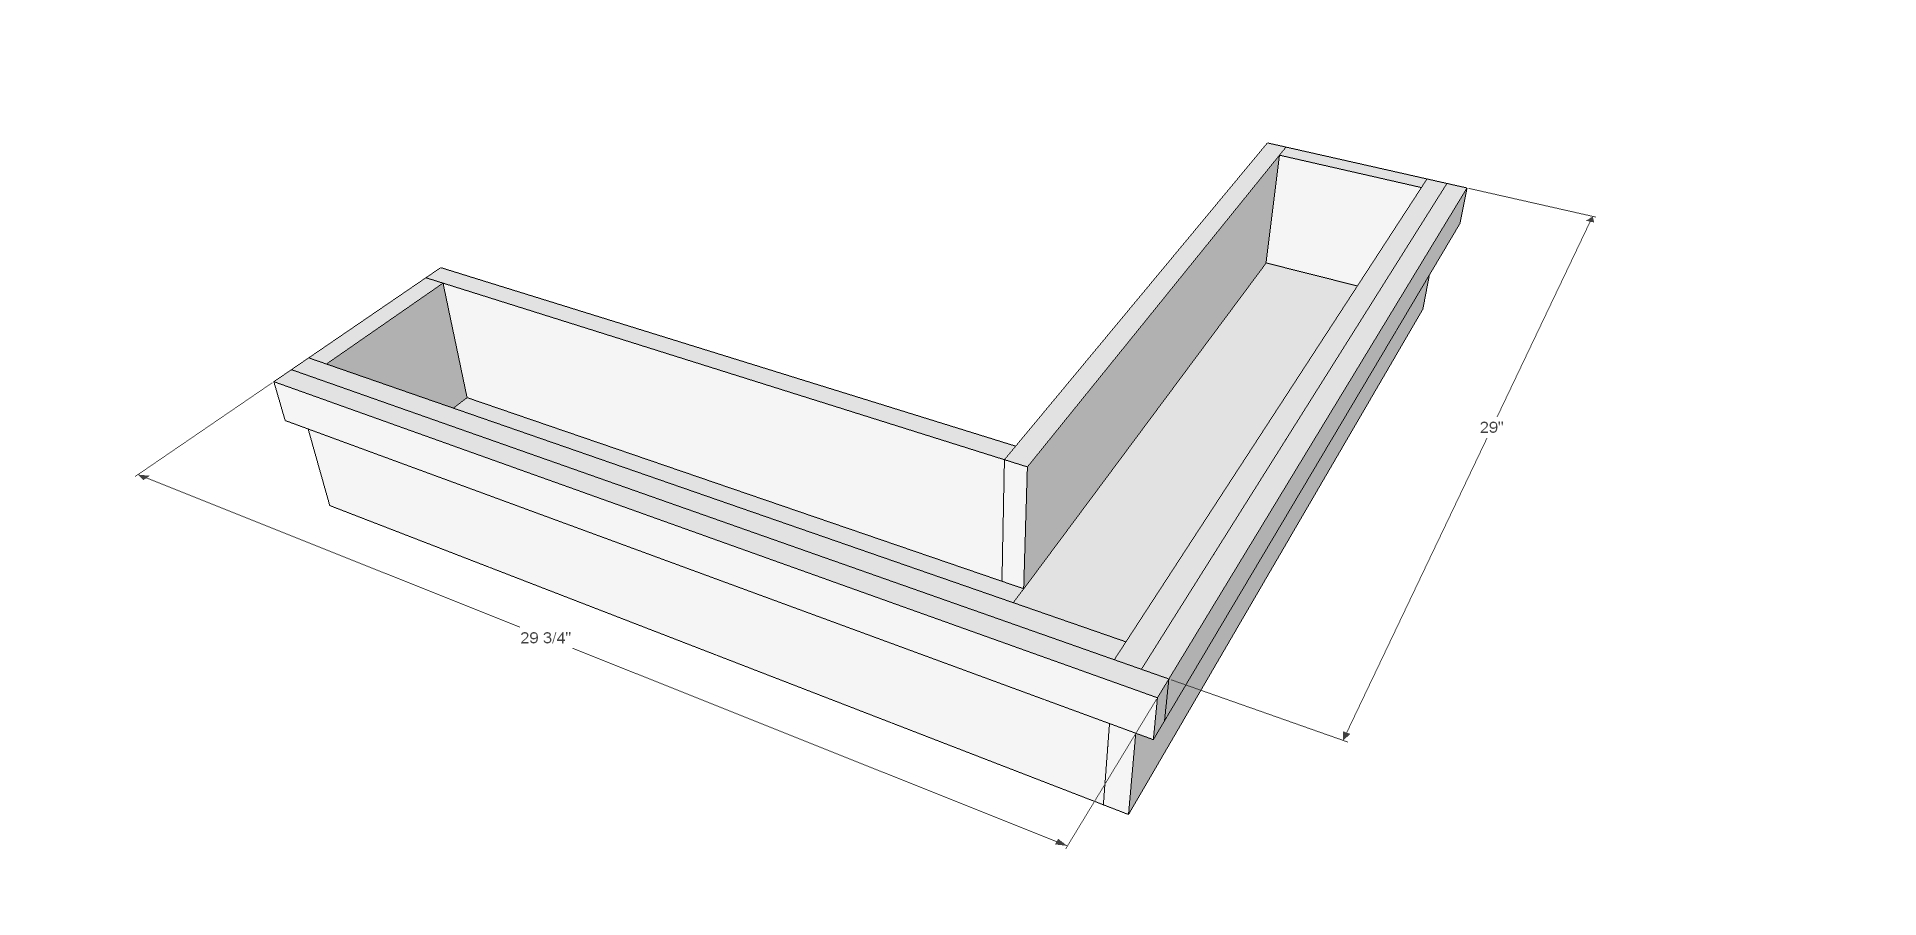 3 Tier Planter Middle Supports.jpg